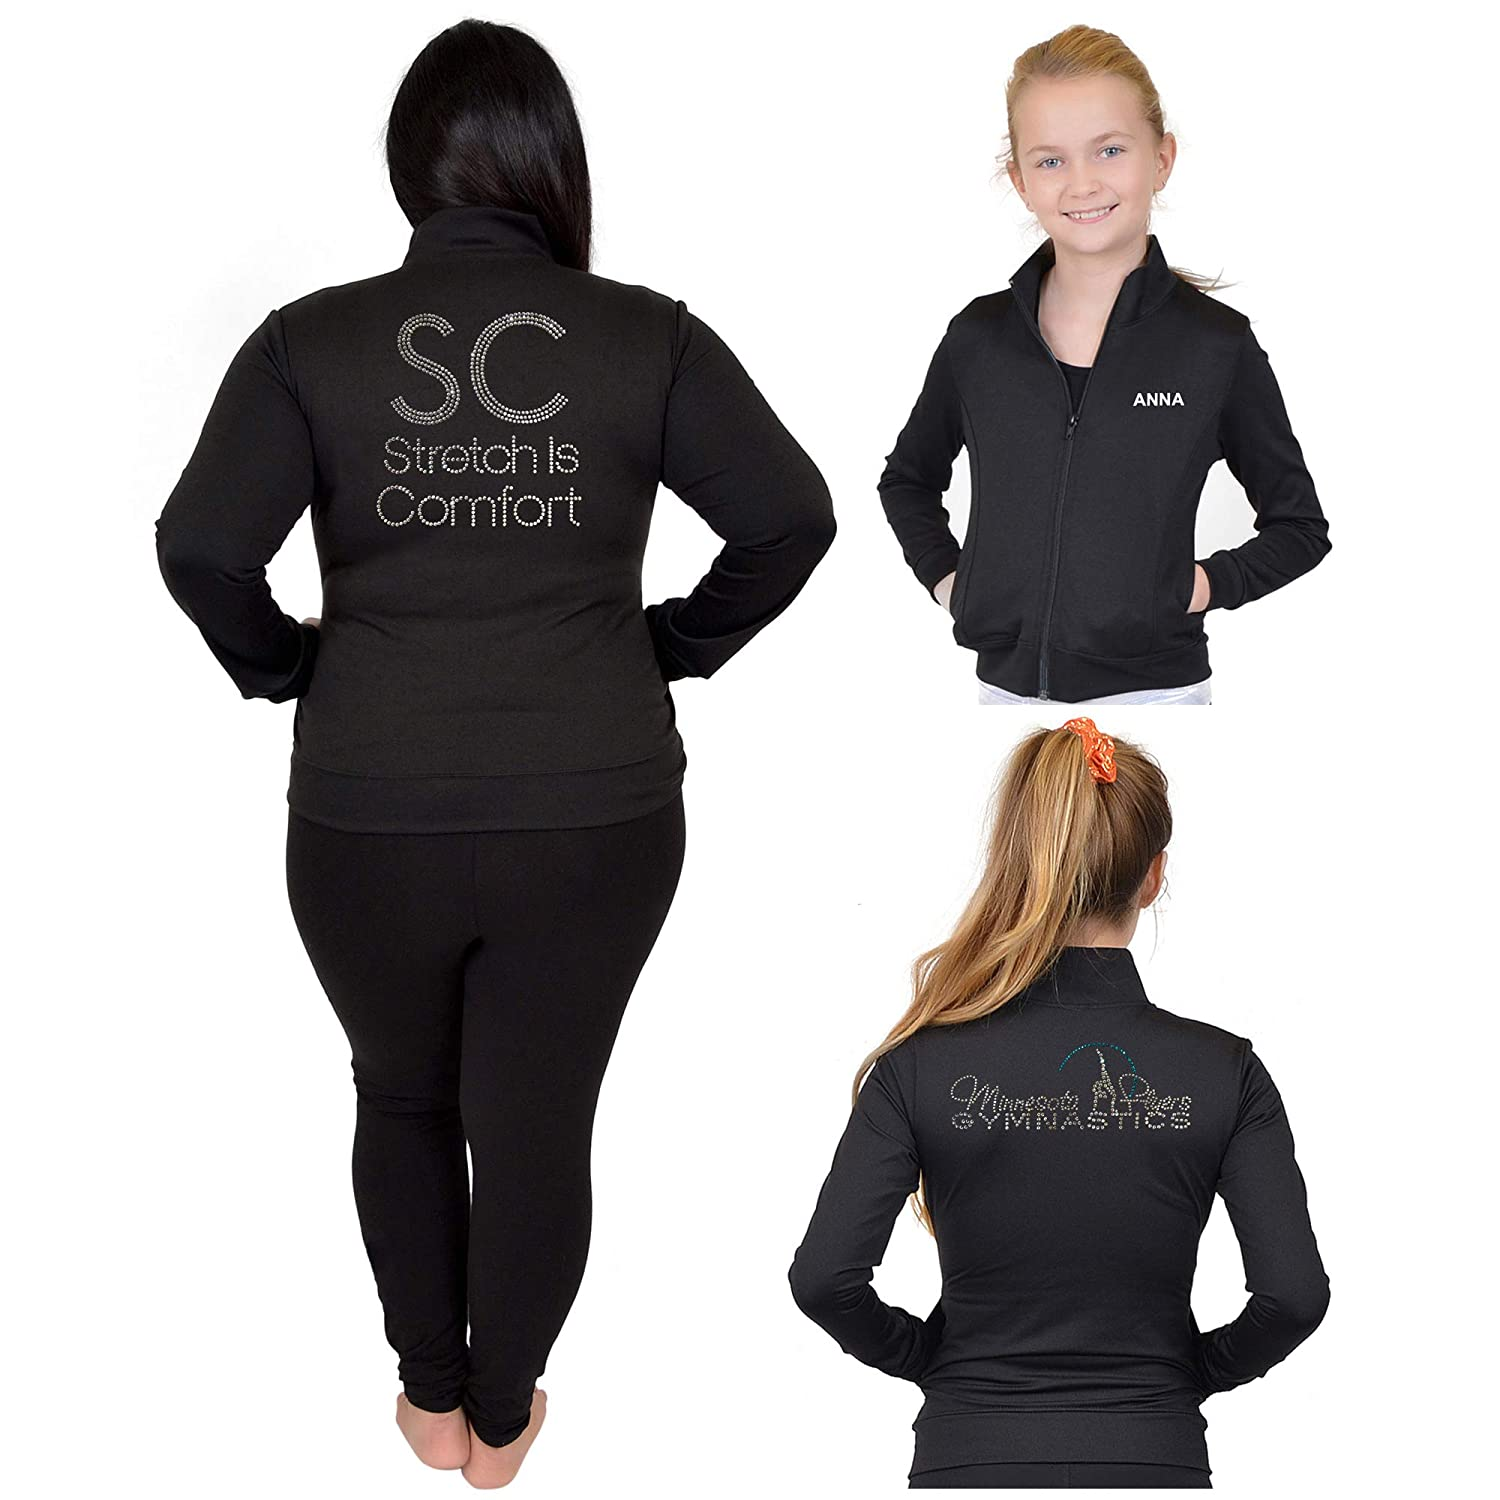 Stretch is Comfort Girls and Womens Personalizable and Customizable Jacket